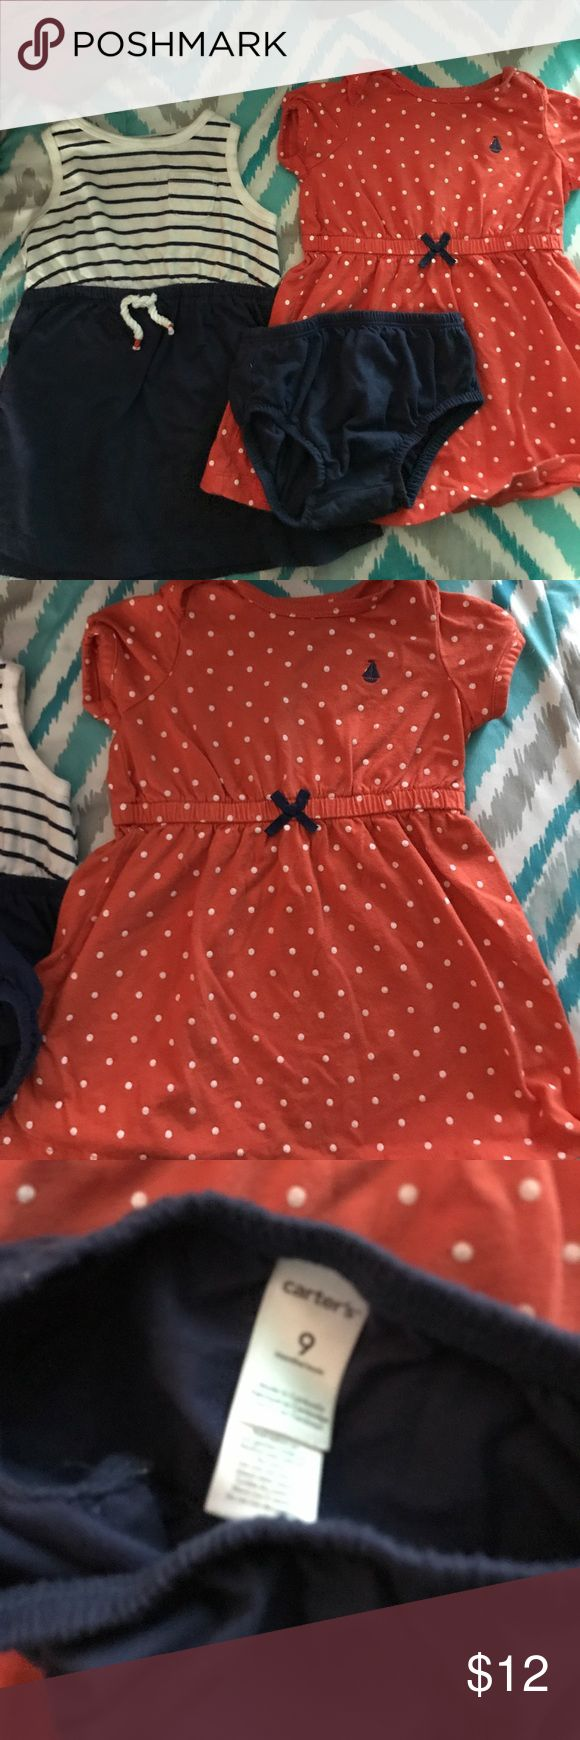 CARTERS NAUTICAL NAVY&ORANGE 12 month 2 dress set NO FLAWS, Excellent used condition! Washed with dreft, gentle, hung dry)Please ask questions, bundle for discounts, and make offers! If your offer isn't what I had in mine, I'll just send you counteroffer.  CHECK OUT MY CLOSET FOR WOMEN, MEN, AND CHILDREN CLOTHES; with name brands Such as VICTORIA SECRET - PINK  GUESS MICHAEL KORS COACH CHARLOTTE RUSSE(REFUGE) WET SEAL VOLCOM GYMBOREE DKNY EXPRESS CARTERS OSHKOSH MILEY CYRUS LOFT AMERICAN…